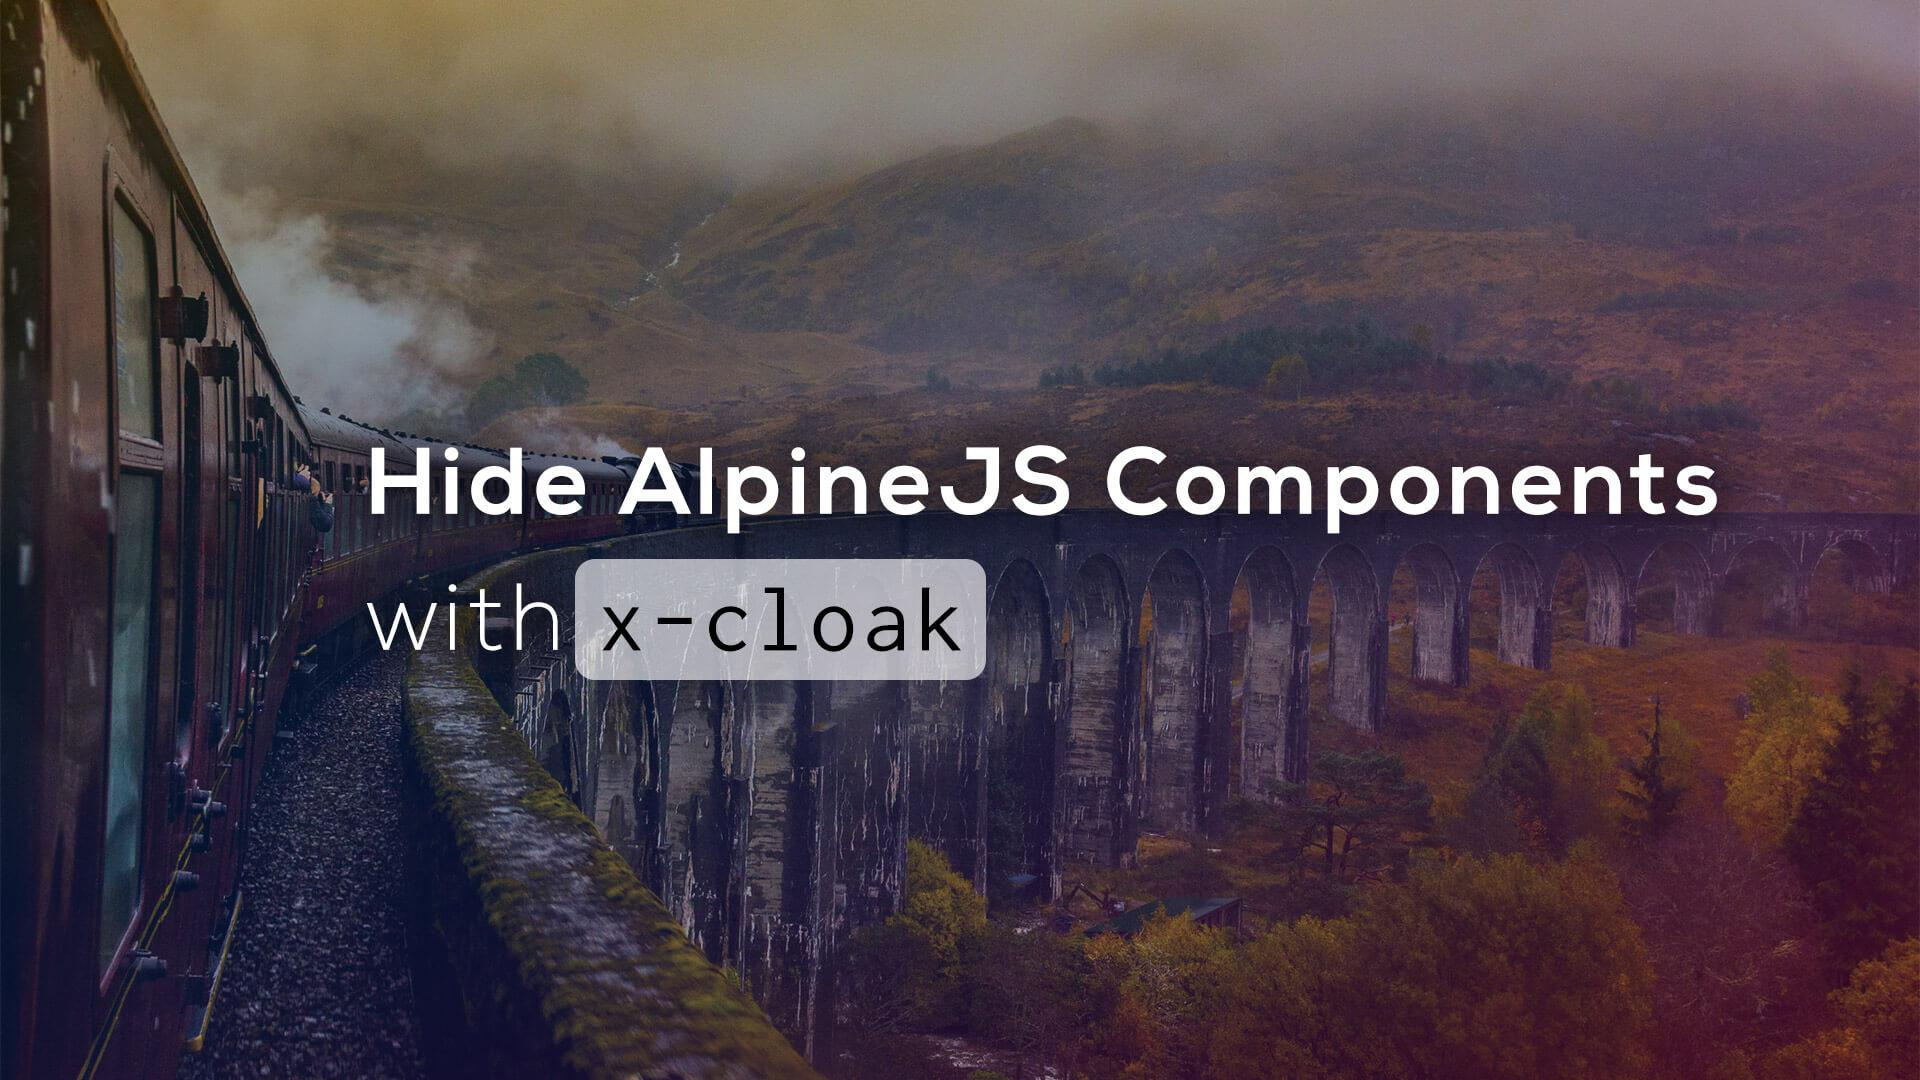 Hide AlpineJS Components with x-cloak